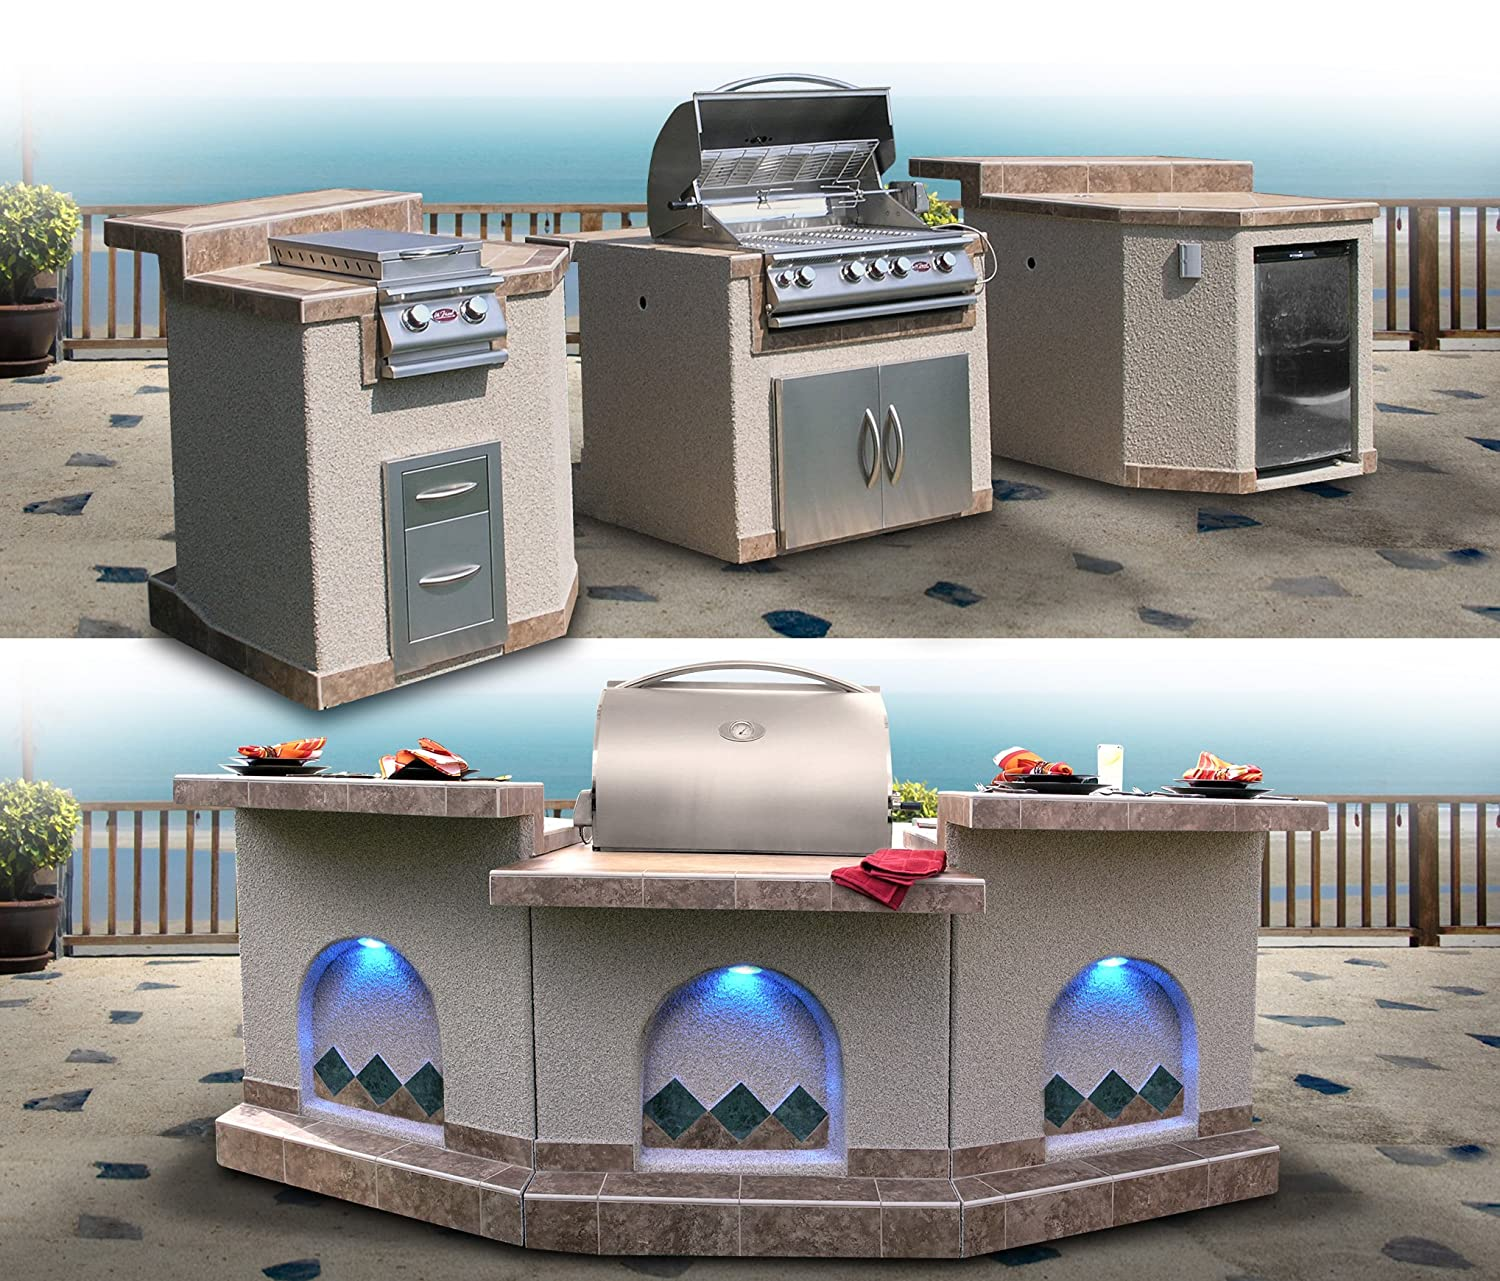 Cal Flame 3 Piece Outdoor Kitchen Island e3100 Island with 4-Burner Built in Grill, 30 Double Access Stainless Steel Door, Refrigerator with Two Tone Tile and Ameristucco Base with Lights